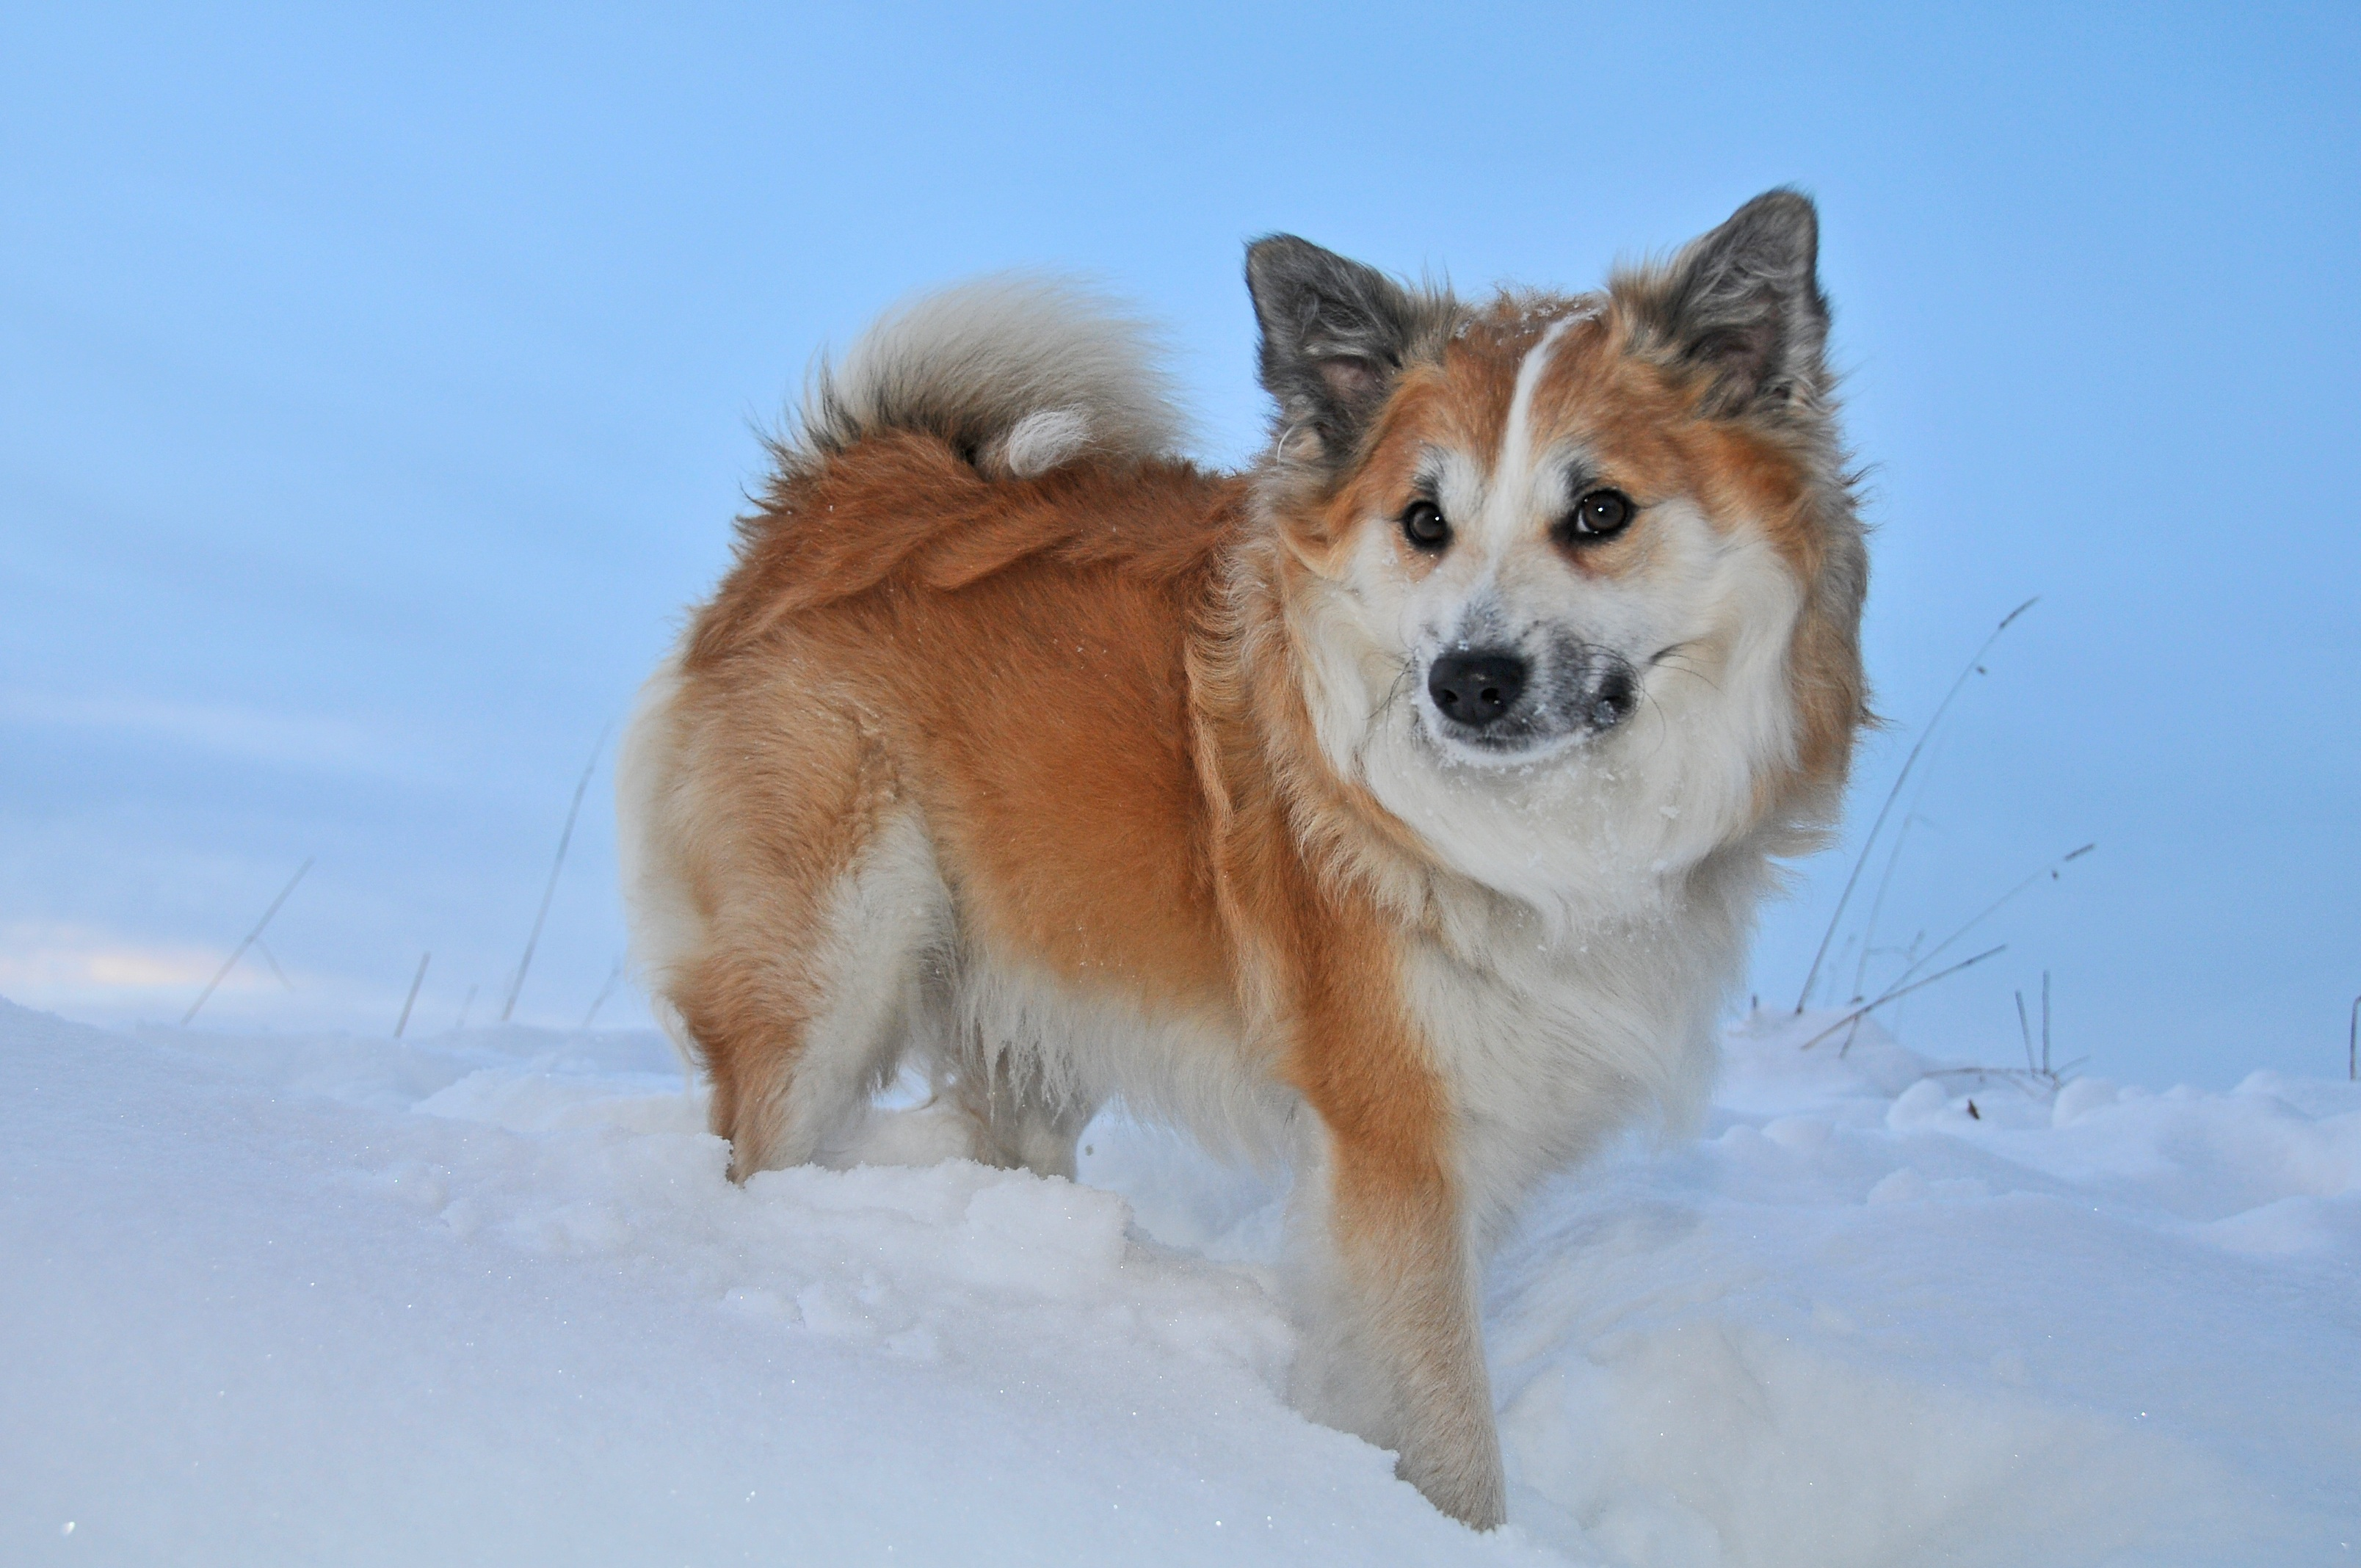 snow-cold-winter-dog-fur-whiskers-1377356.jpg